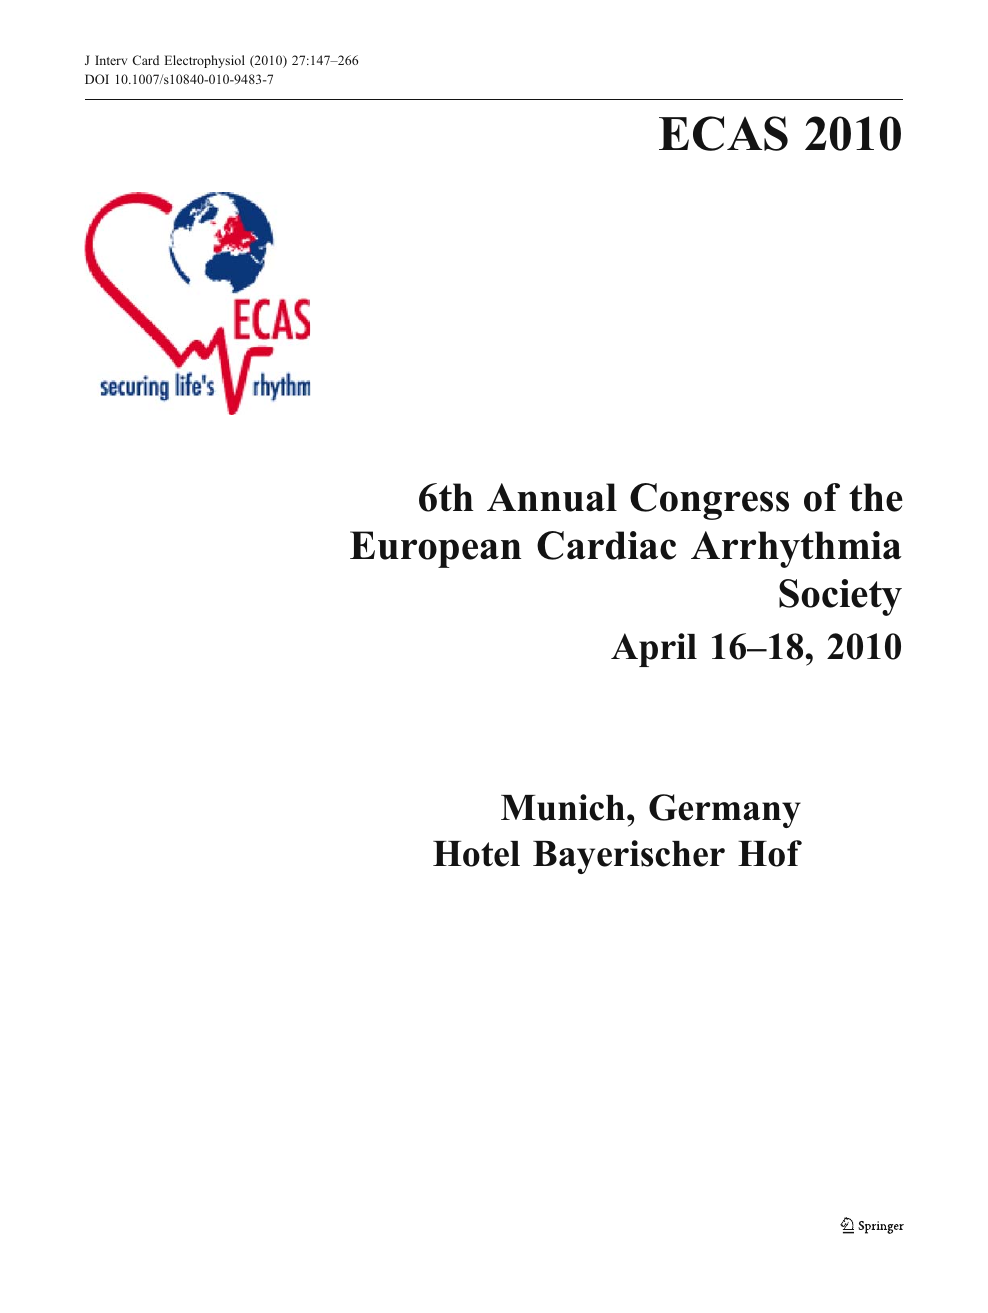 Special program and Abstract Issue of the 6th Congress of the